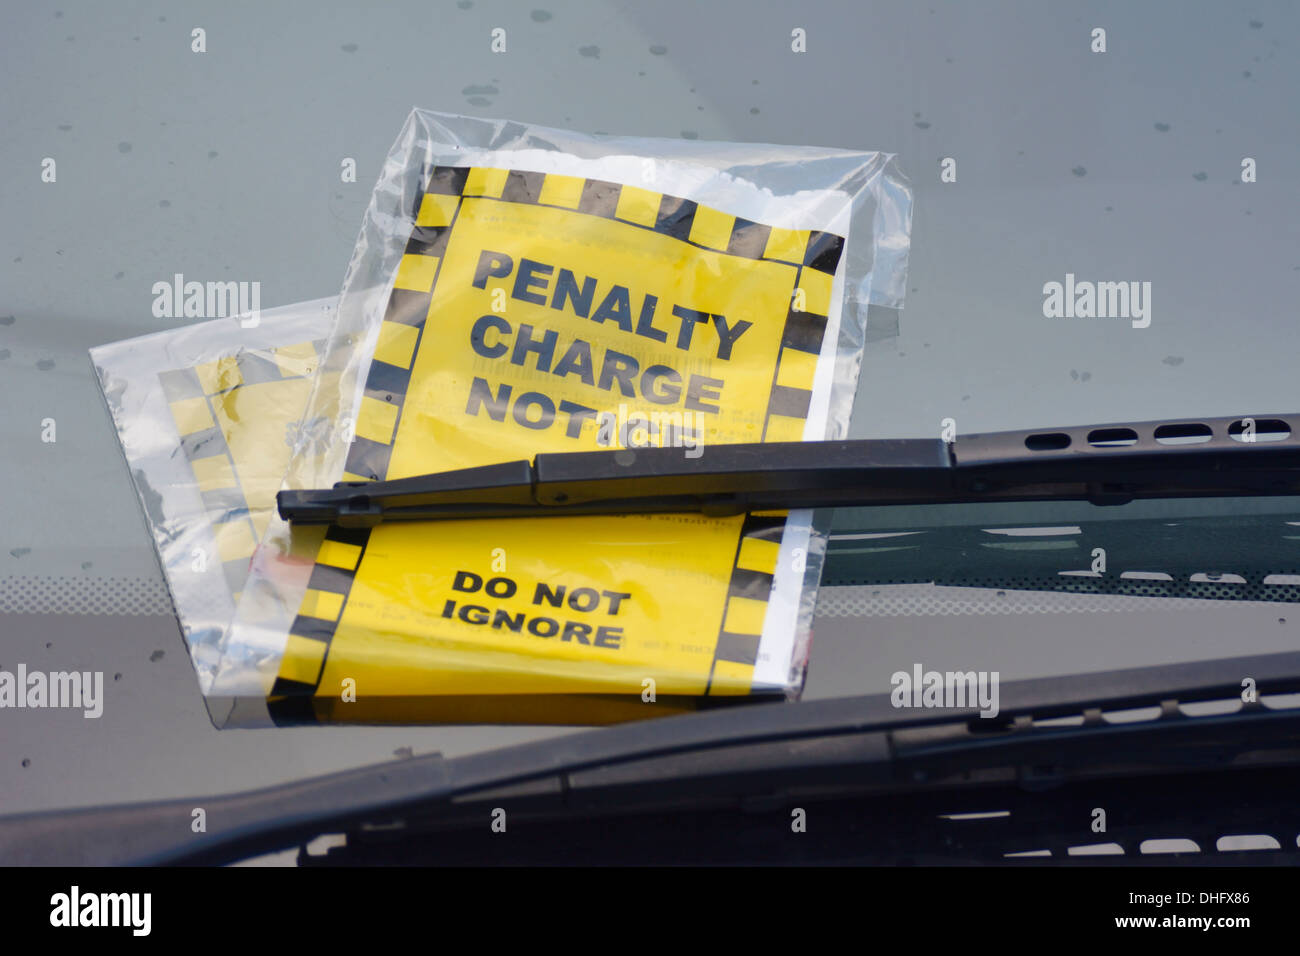 Penalty Charge notice - also known as a Parking Ticket. - Stock Image